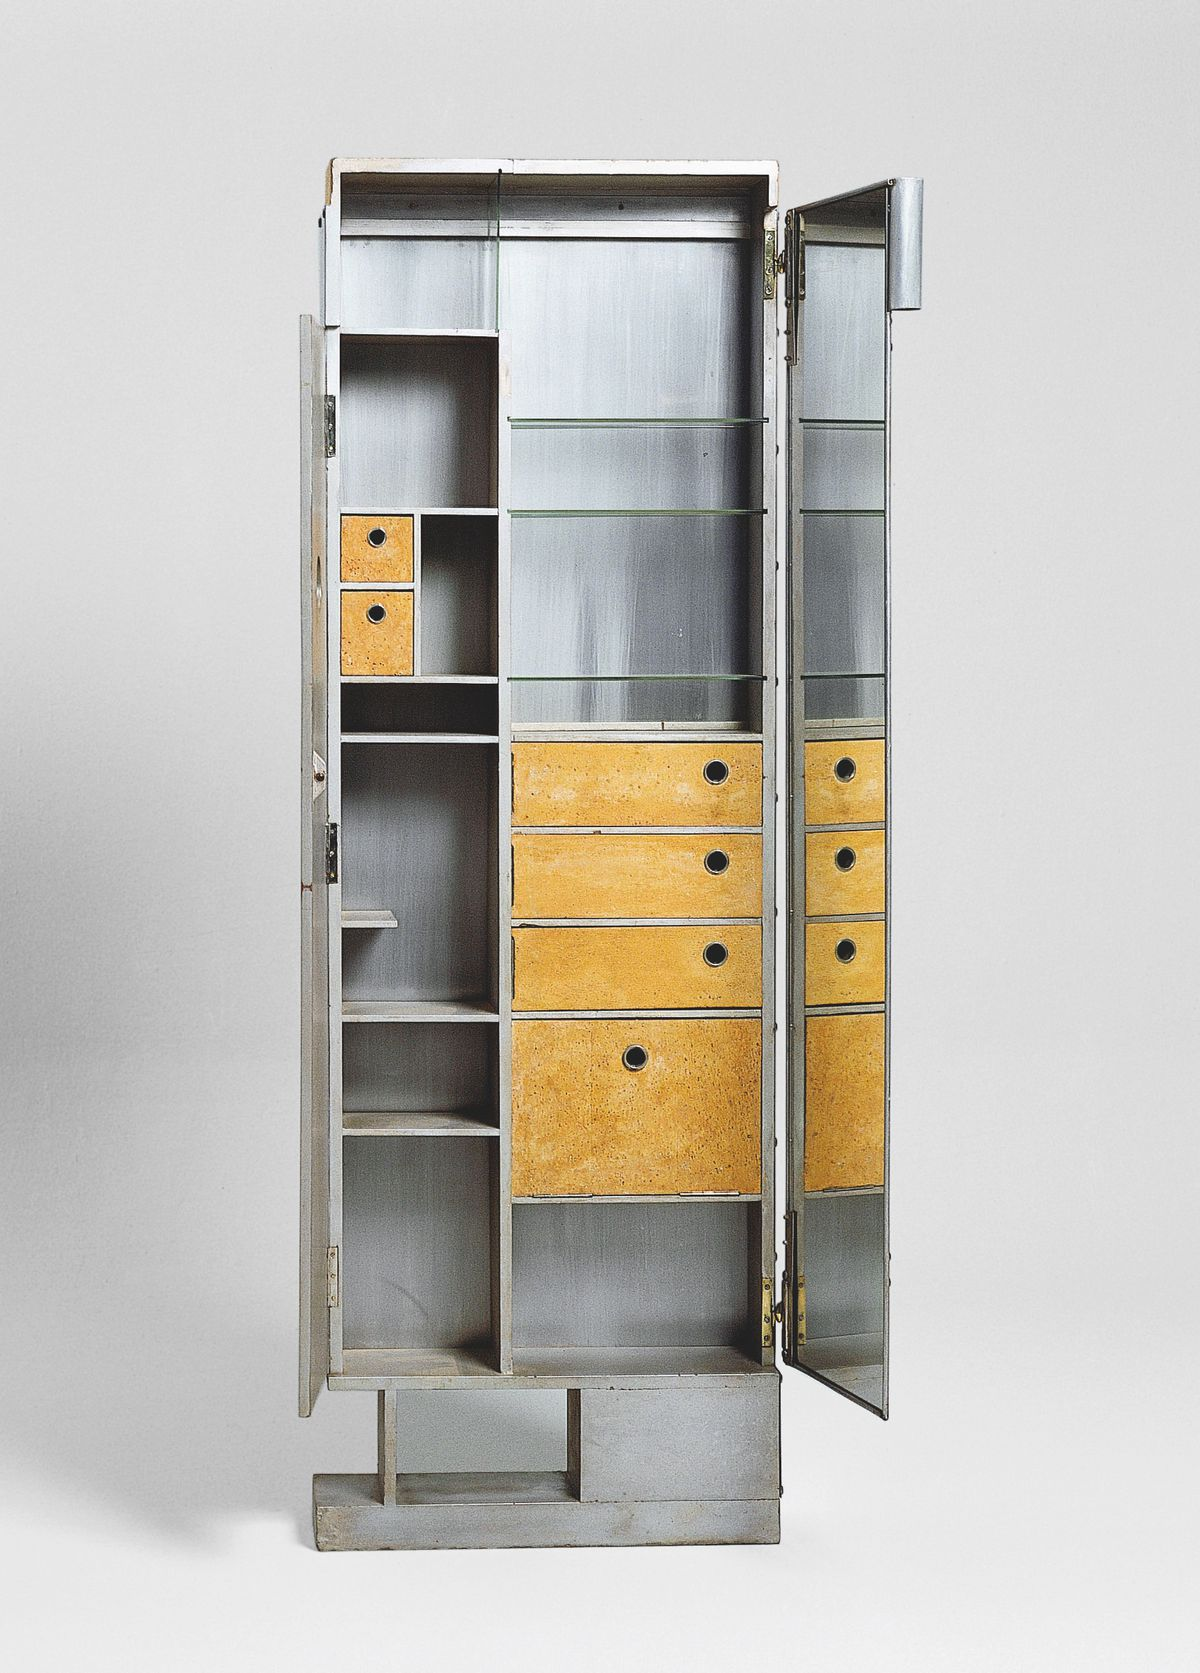 Cabinet made of aluminum sheets and cork panels.